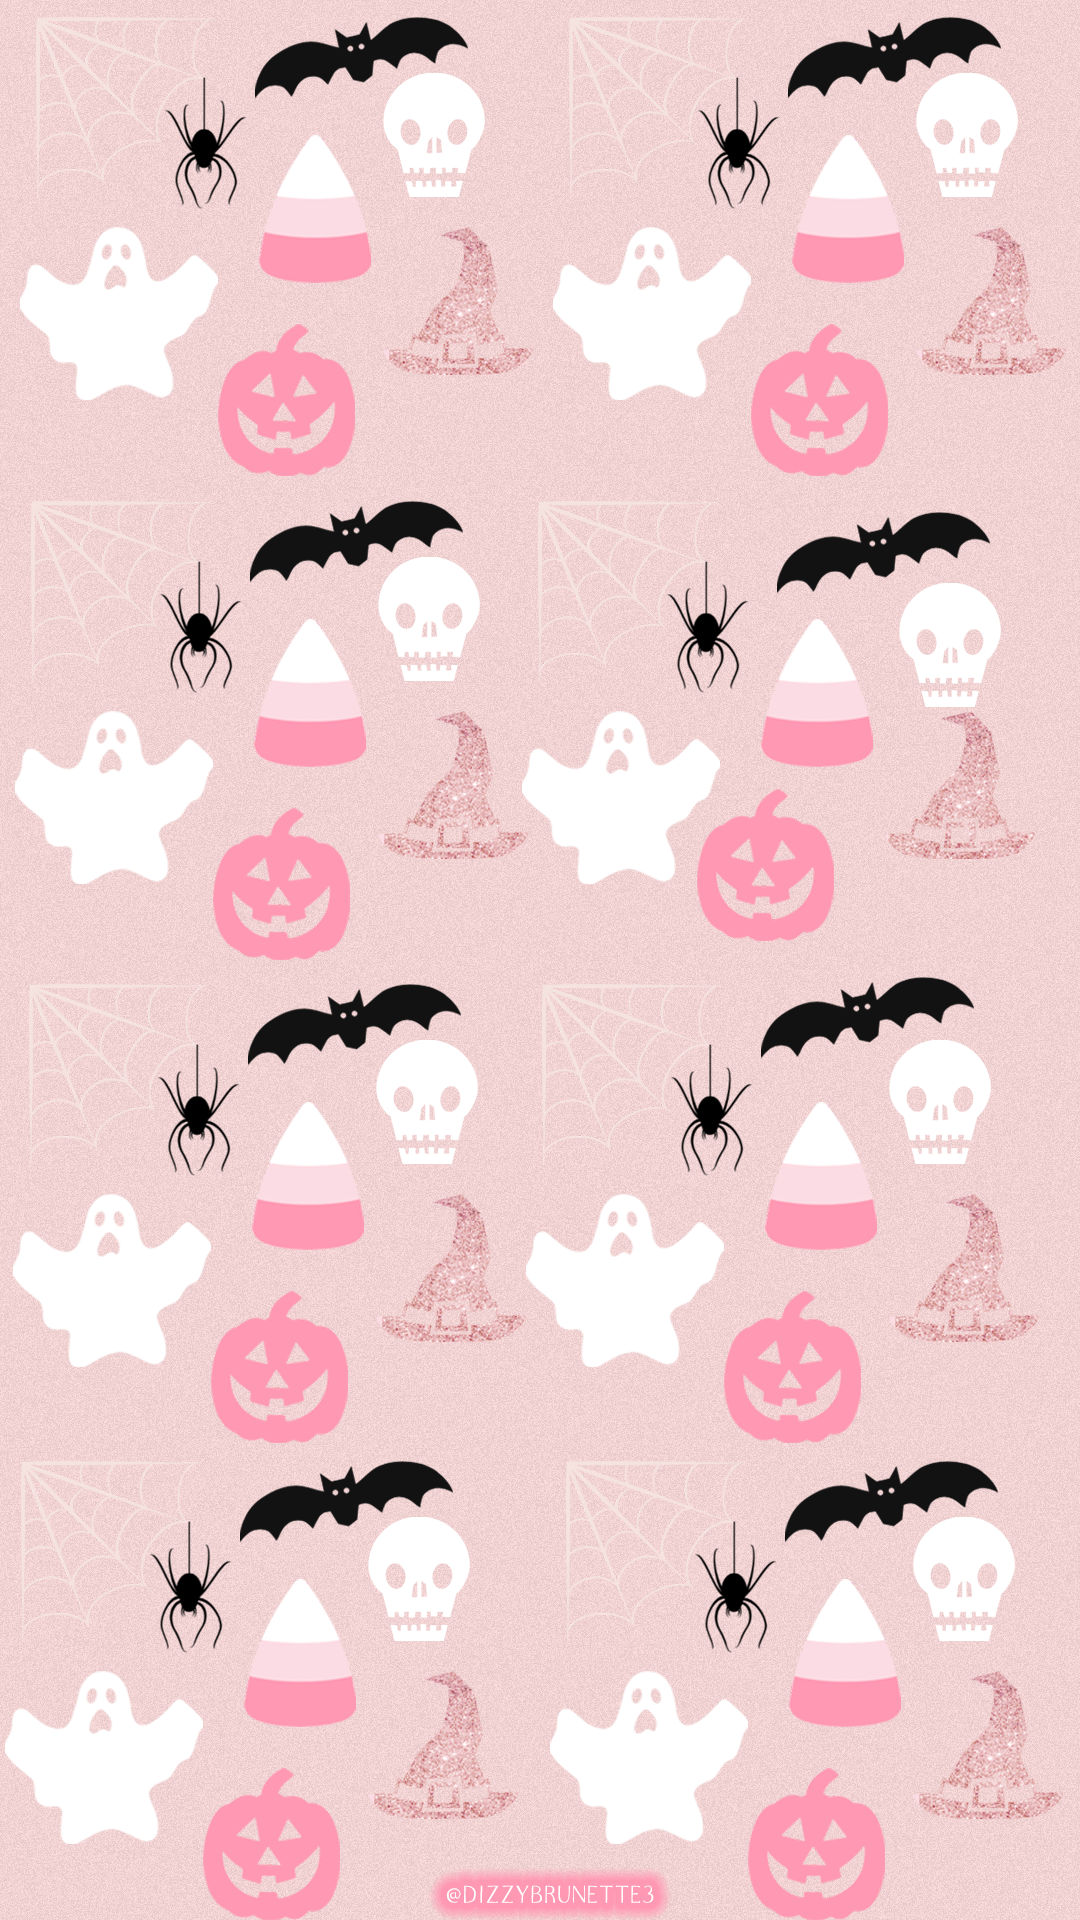 Pink Wallpaper Iphone Wallpaper Phone Wallpaper Free Pink Wallpaper Free Iphone Phone Wallpaper Pastel Halloween Wallpaper Halloween Wallpaper Backgrounds